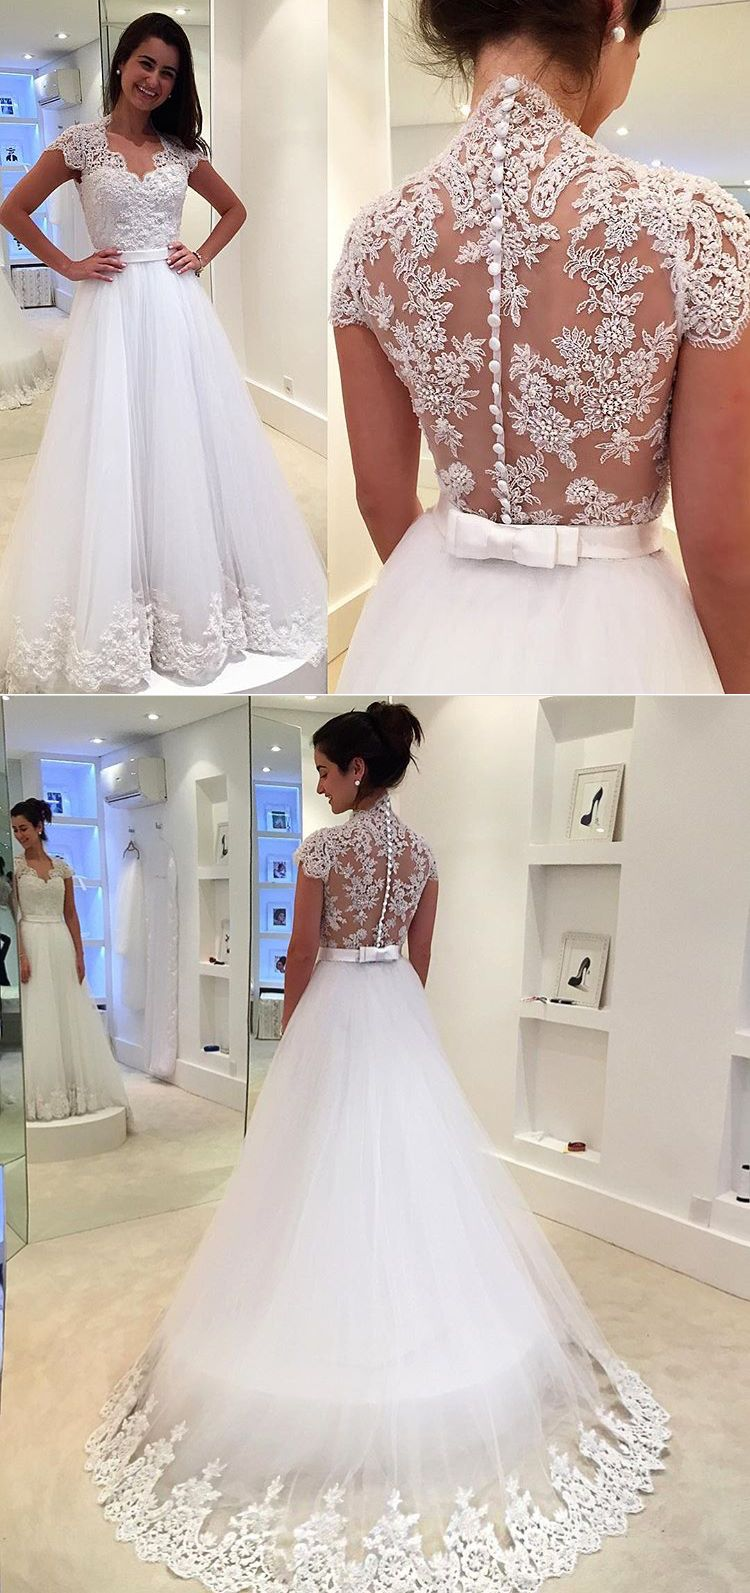 6acb516052 Gorgeous Cap Sleeves Lace Tulle White Prom Dress Gorgeous Wedding Gown  Elegant Bridal Gown  dress  gown  wedding  prom  prom2018  promdress   promgown  white ...